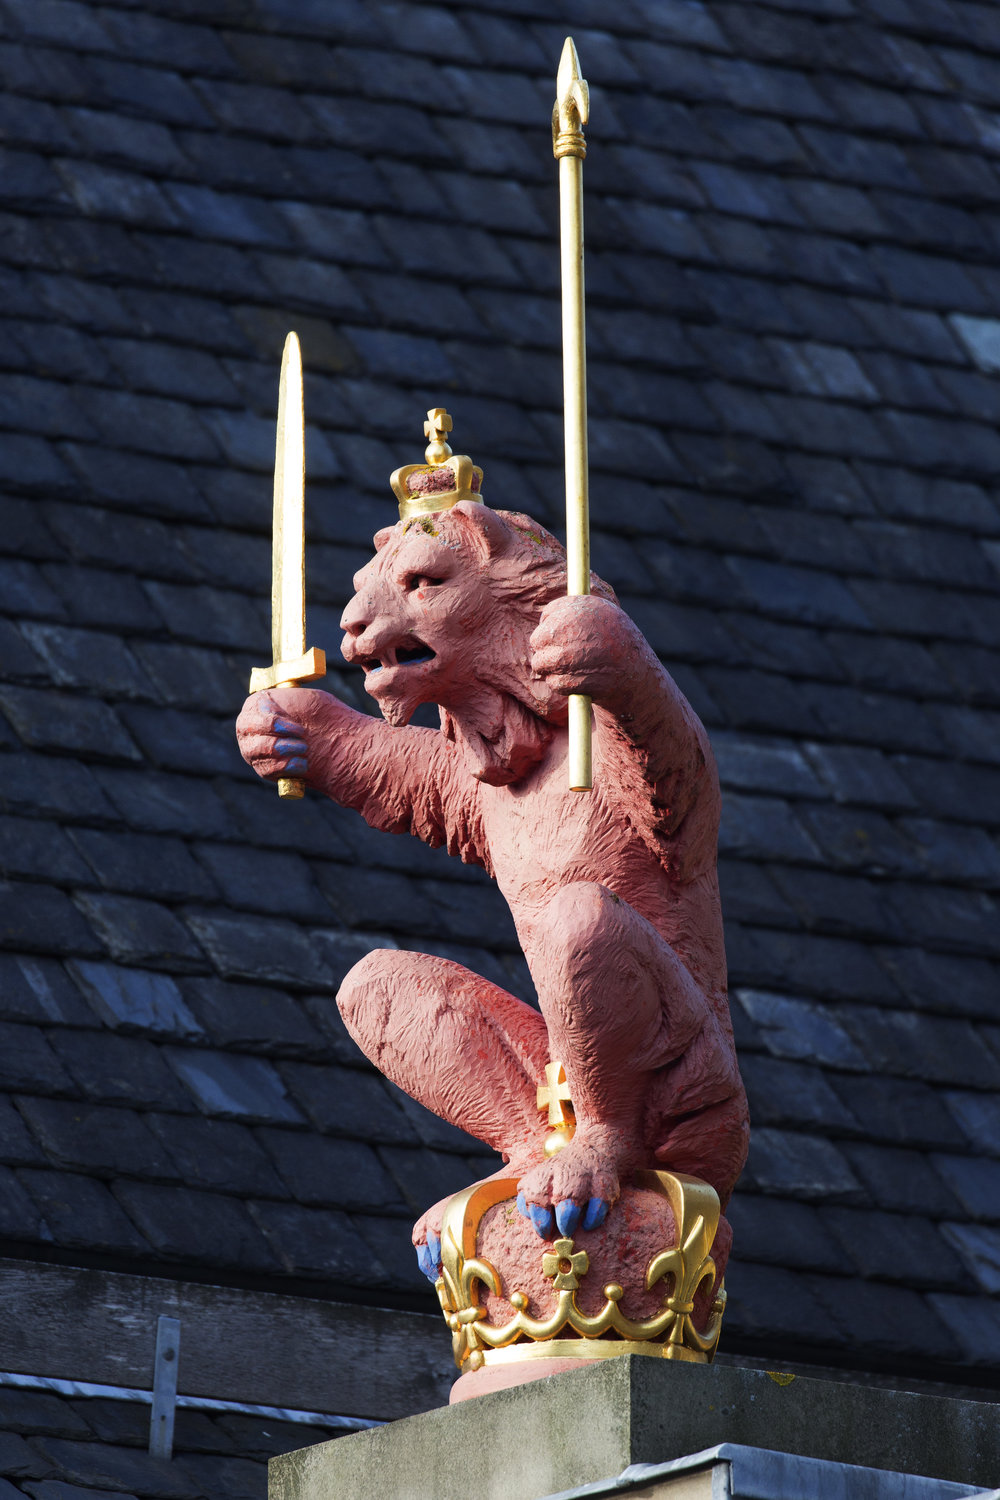 and Lion's with swords.